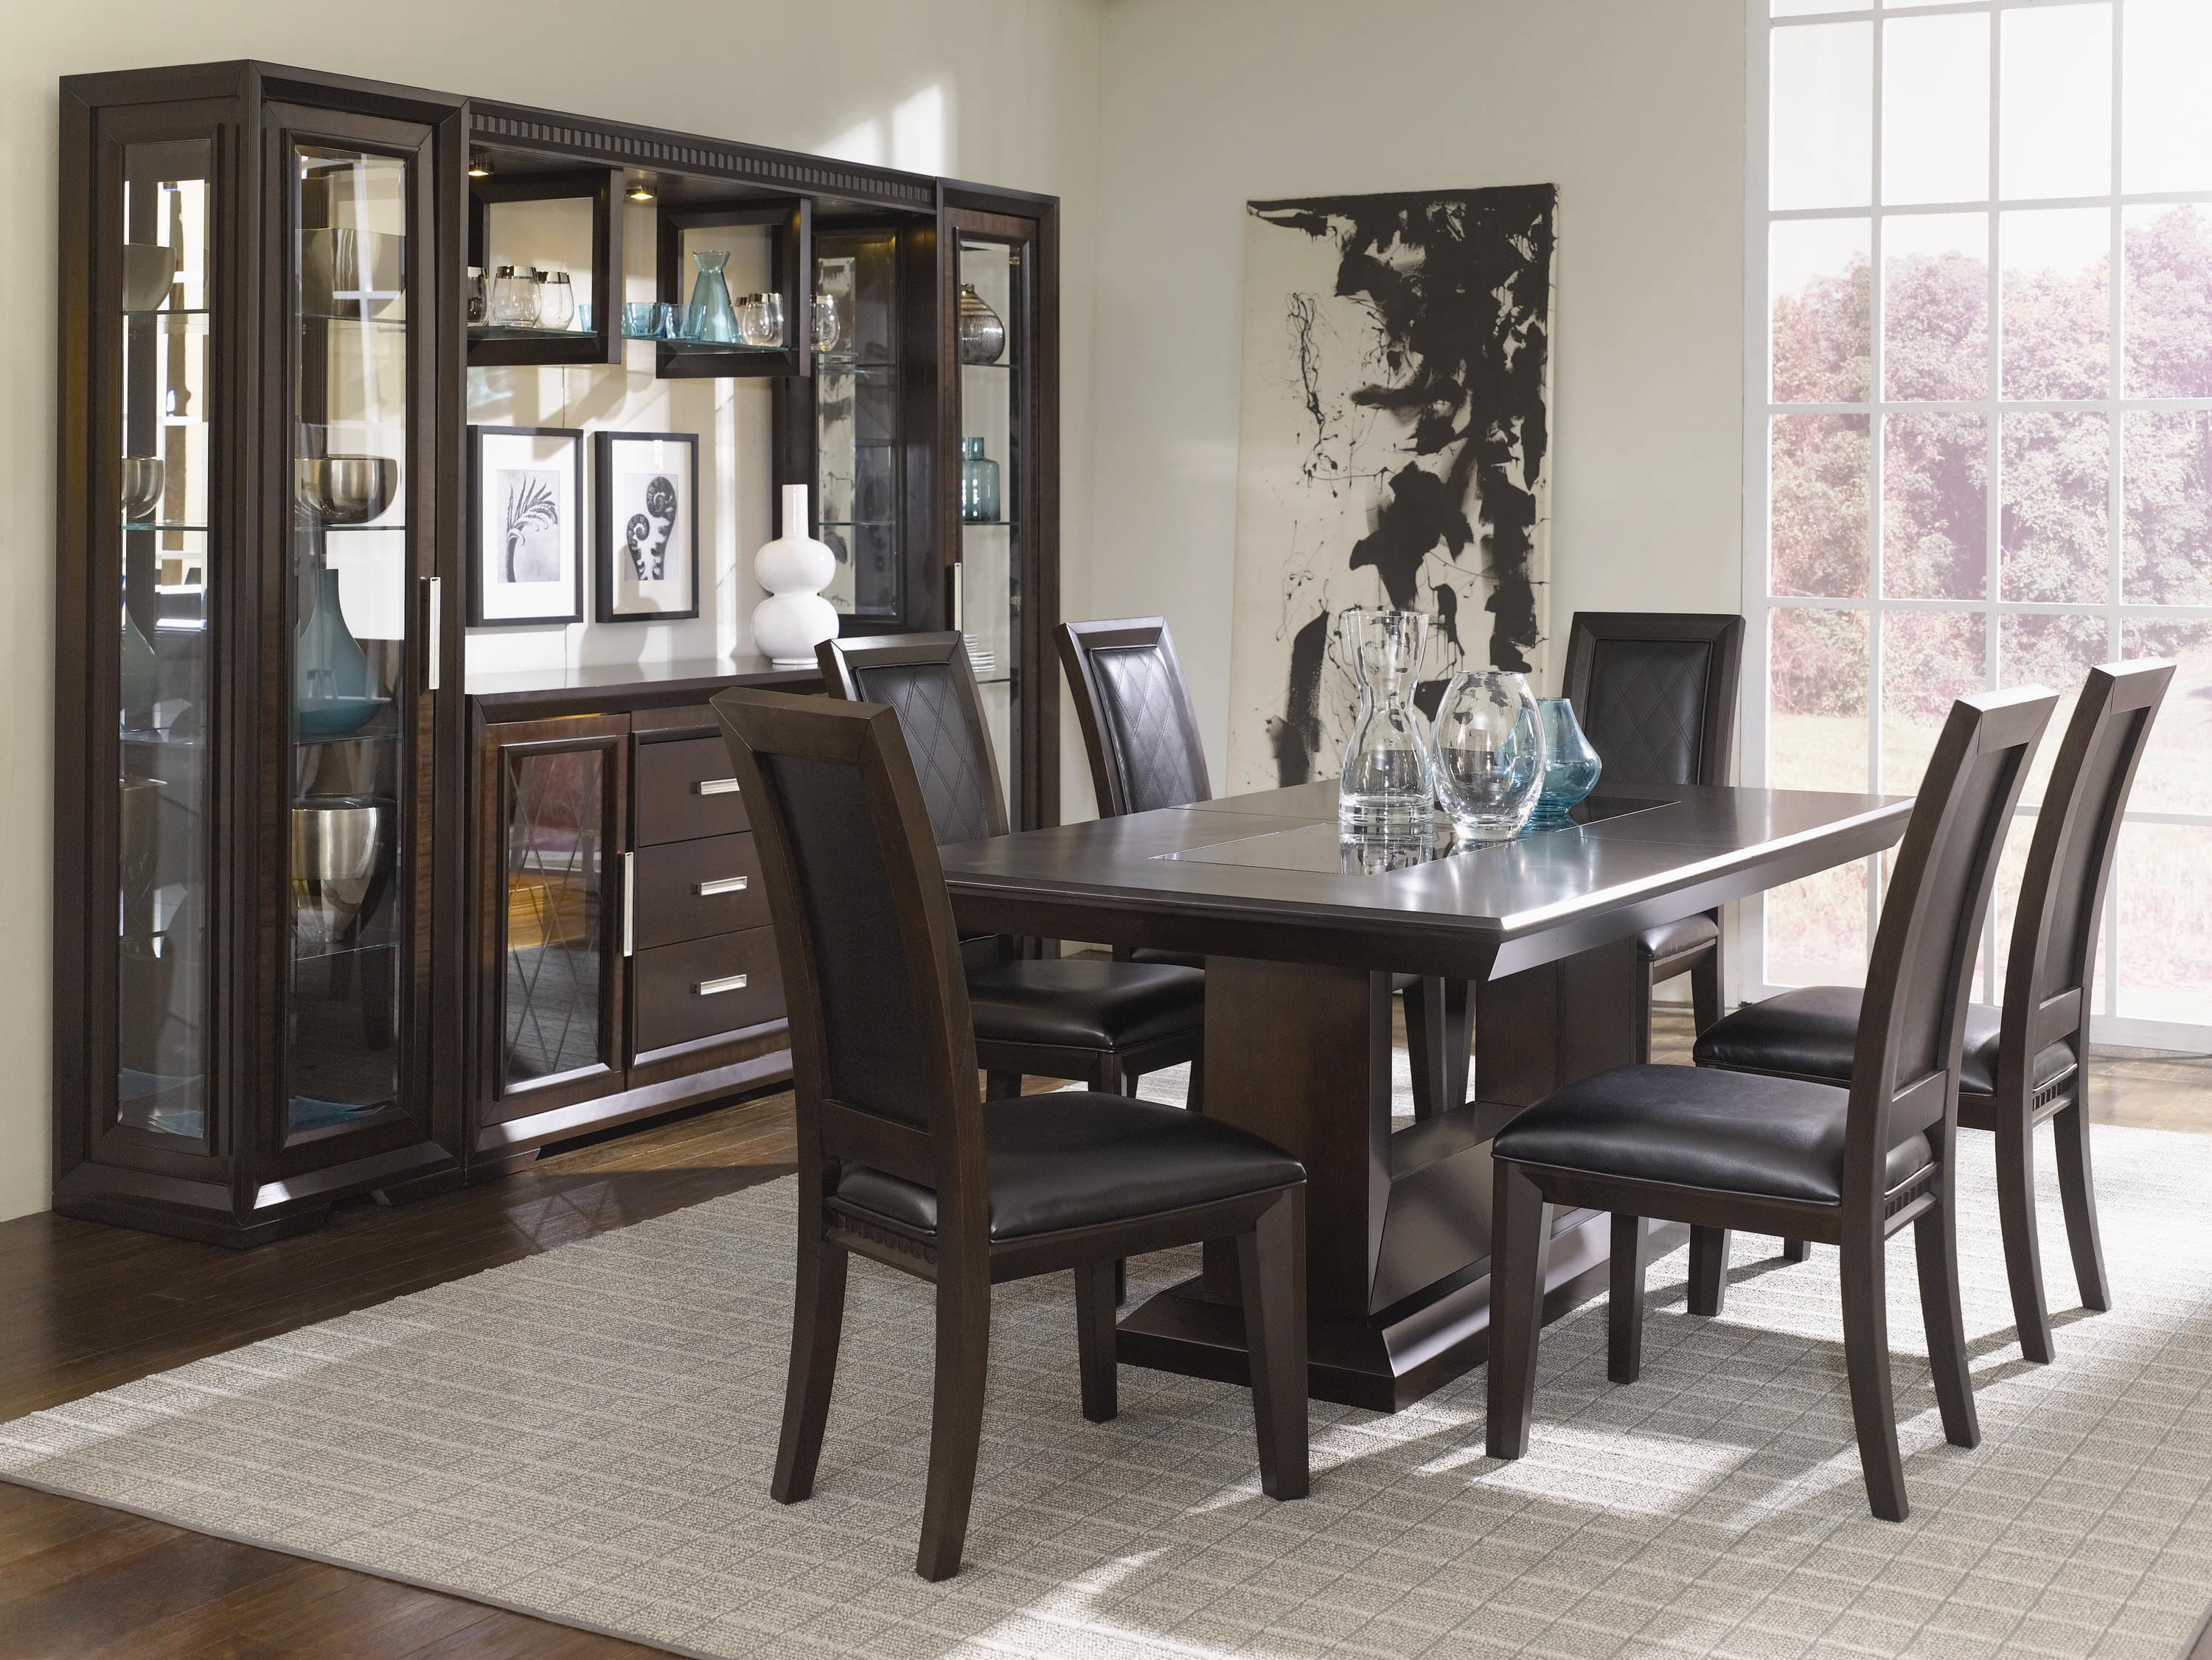 China Cabinet With Server, Light Bridge And Storage